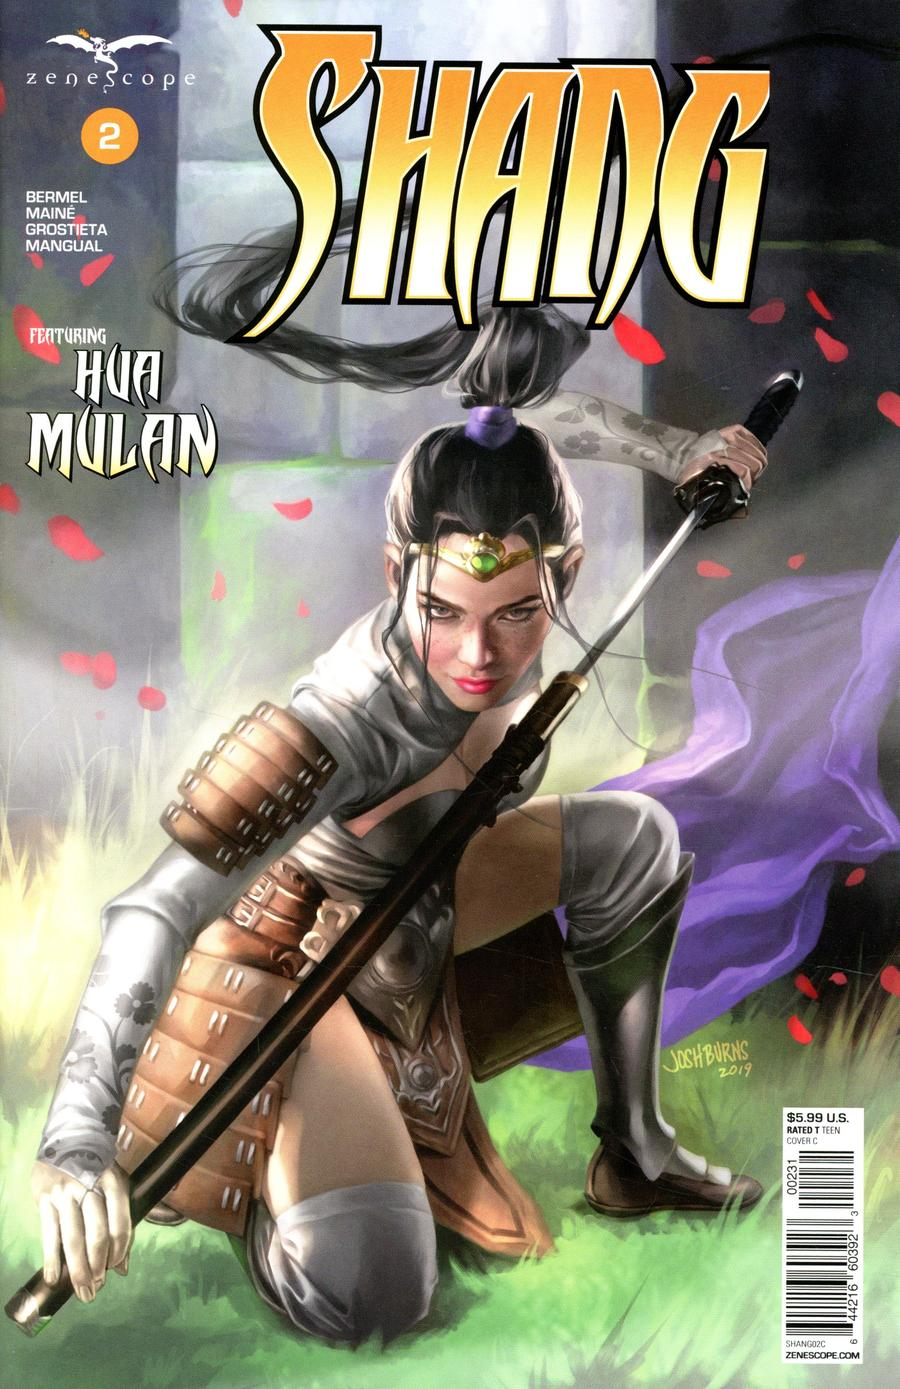 Grimm Fairy Tales Presents Shang #2 Cover C Josh Burns